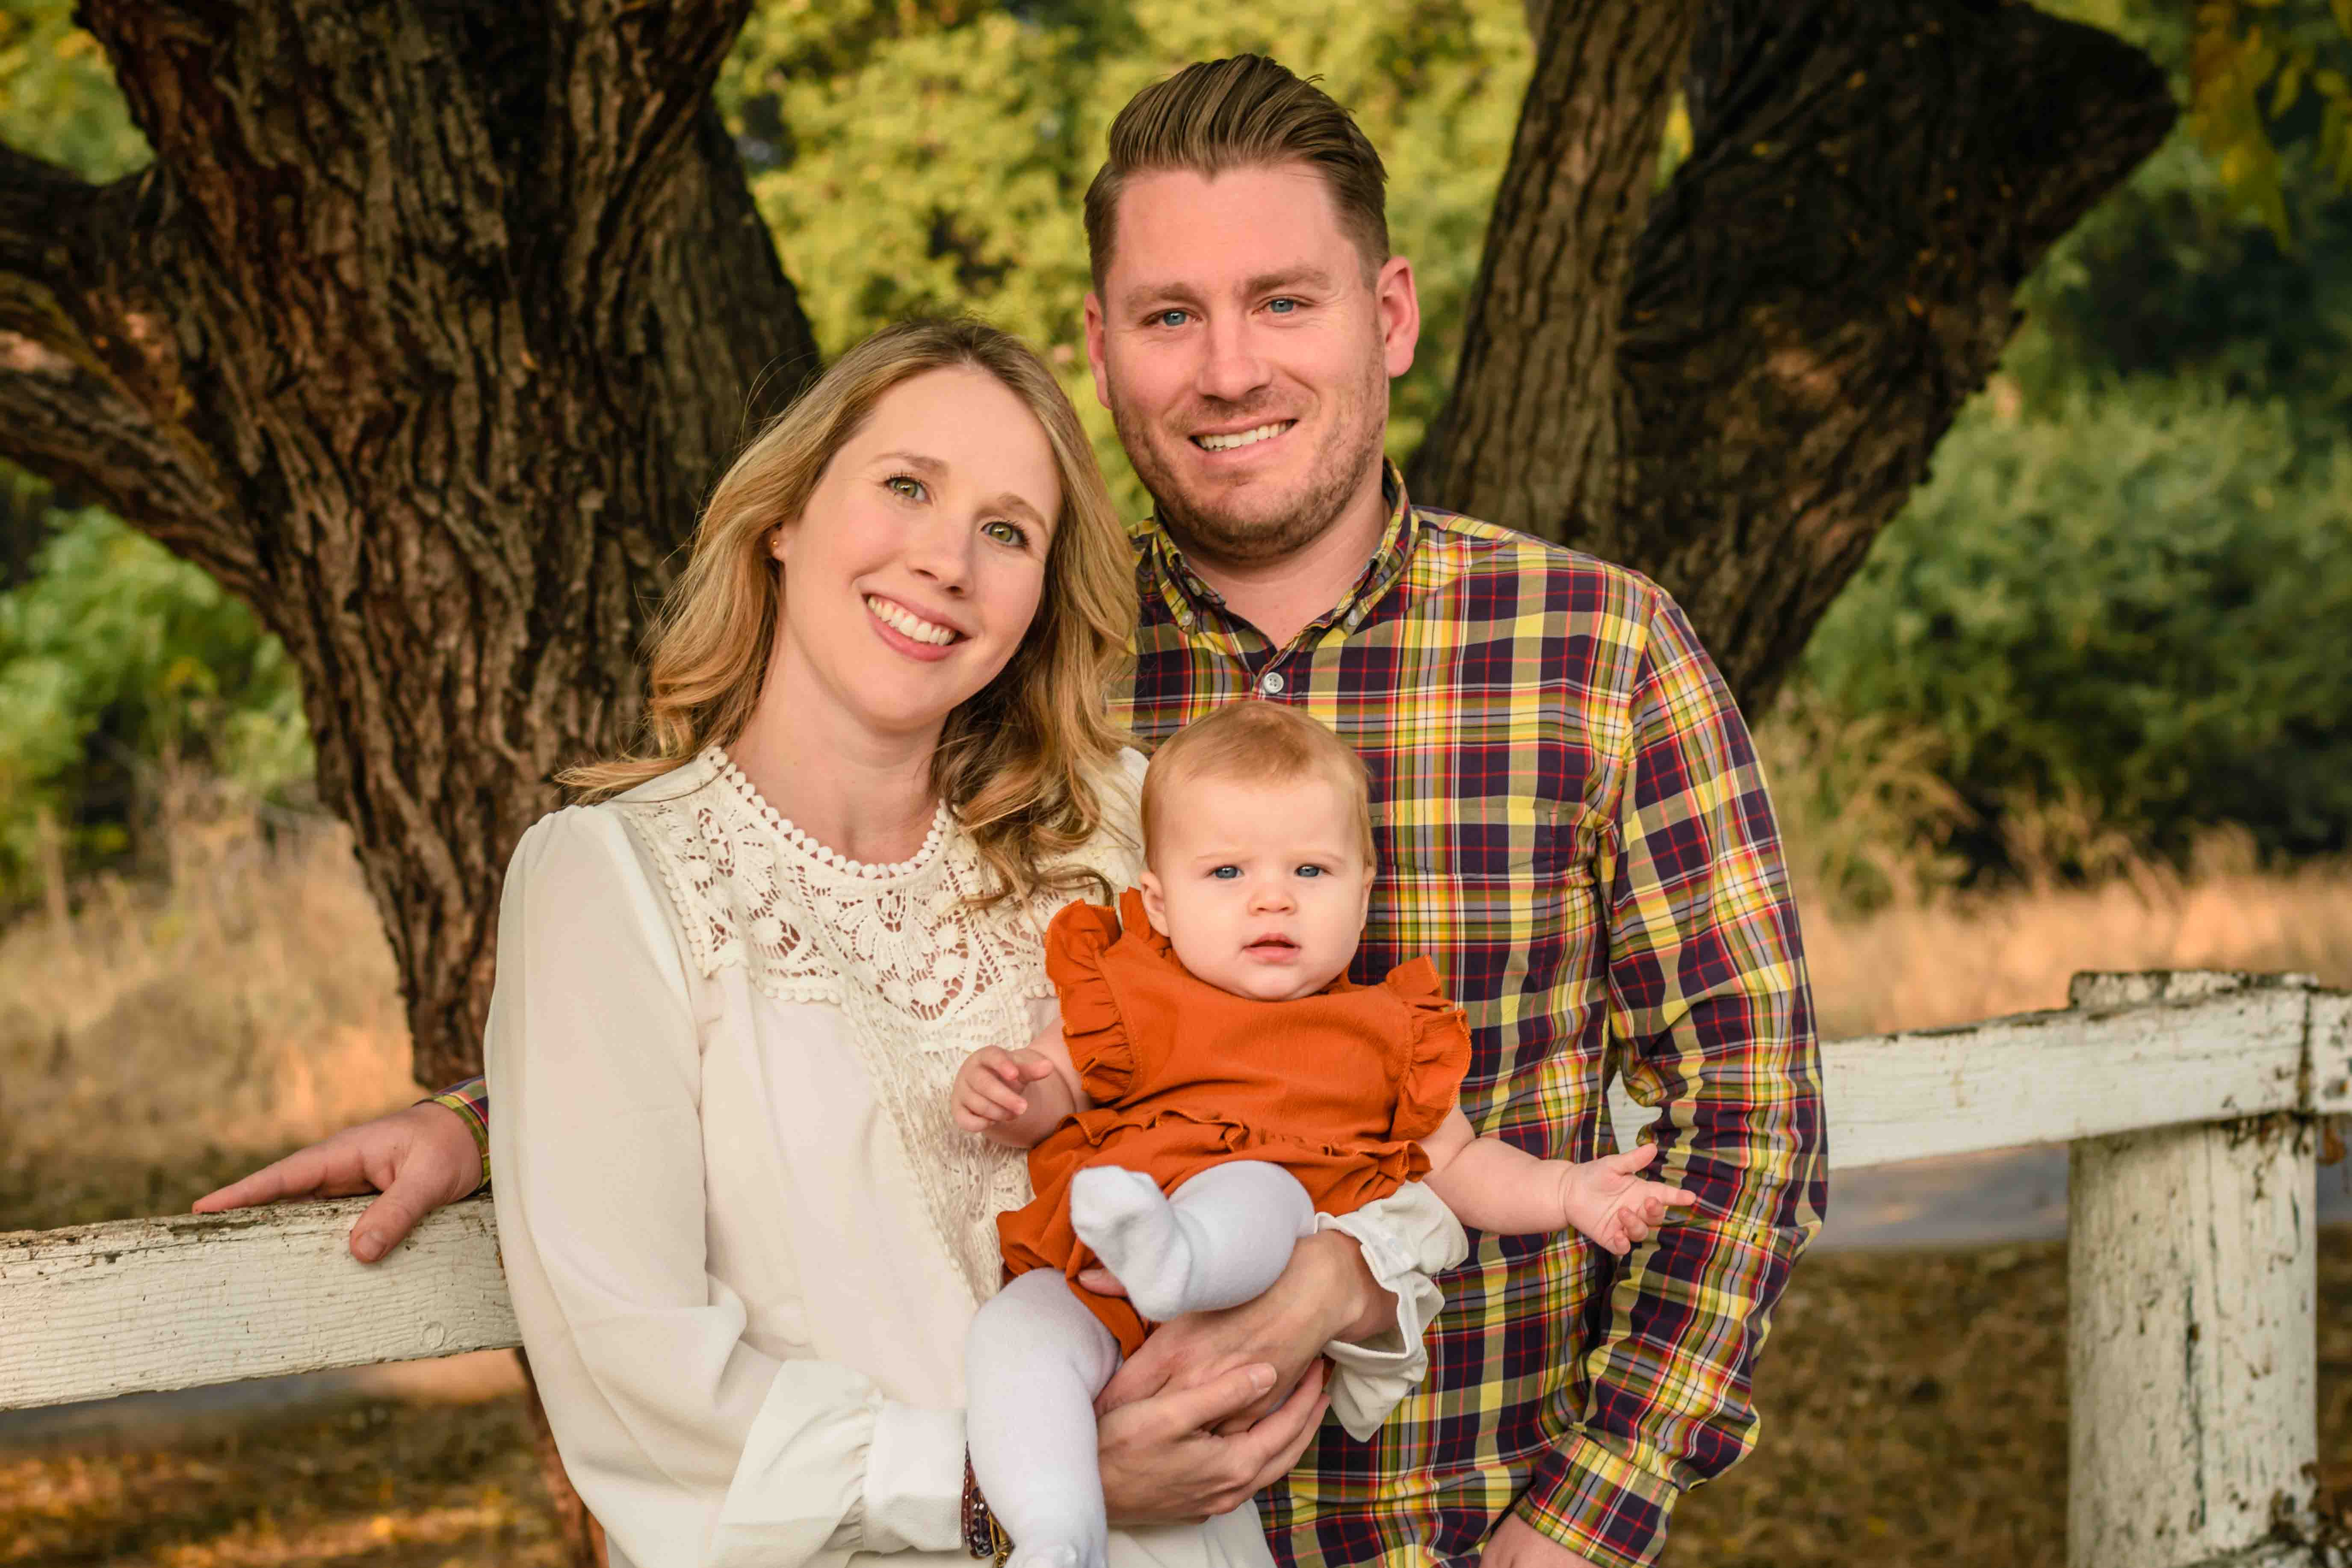 family photography in the bay area cupertino mcclellan ranch park toddler baby newborn natural light candid